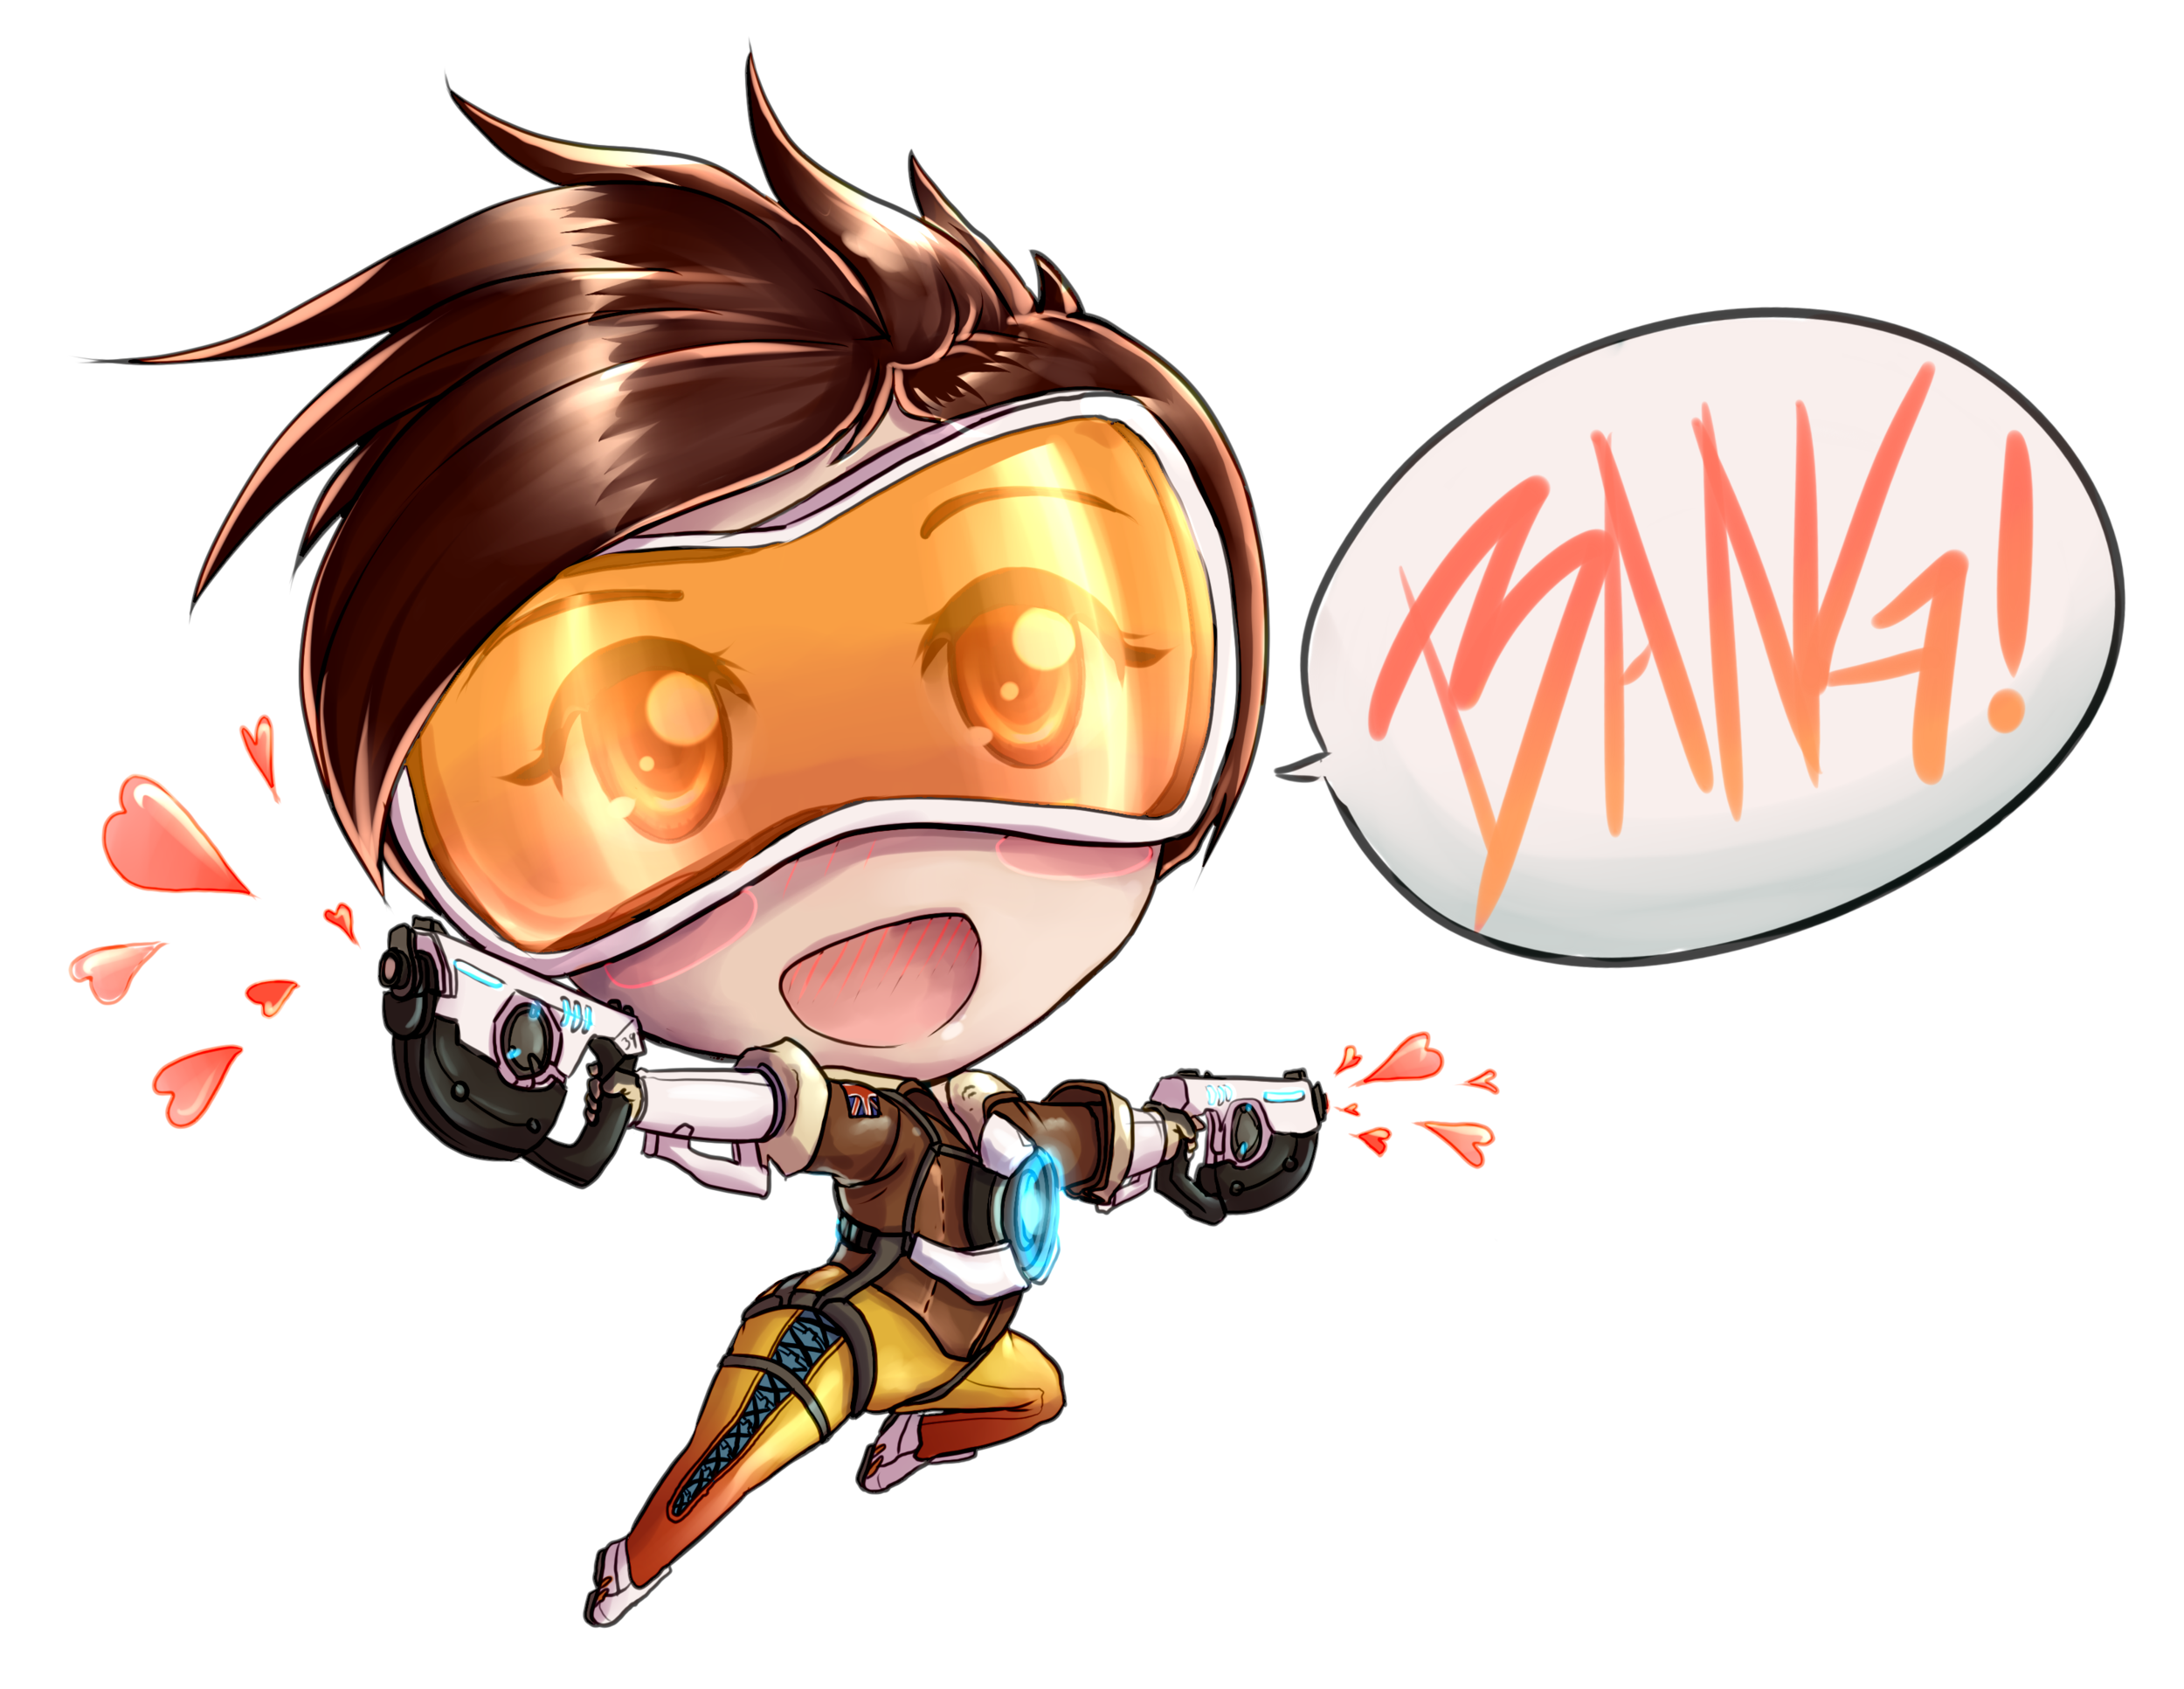 Fan Work for Tracer from Overwatch, Blizzard Entertainment